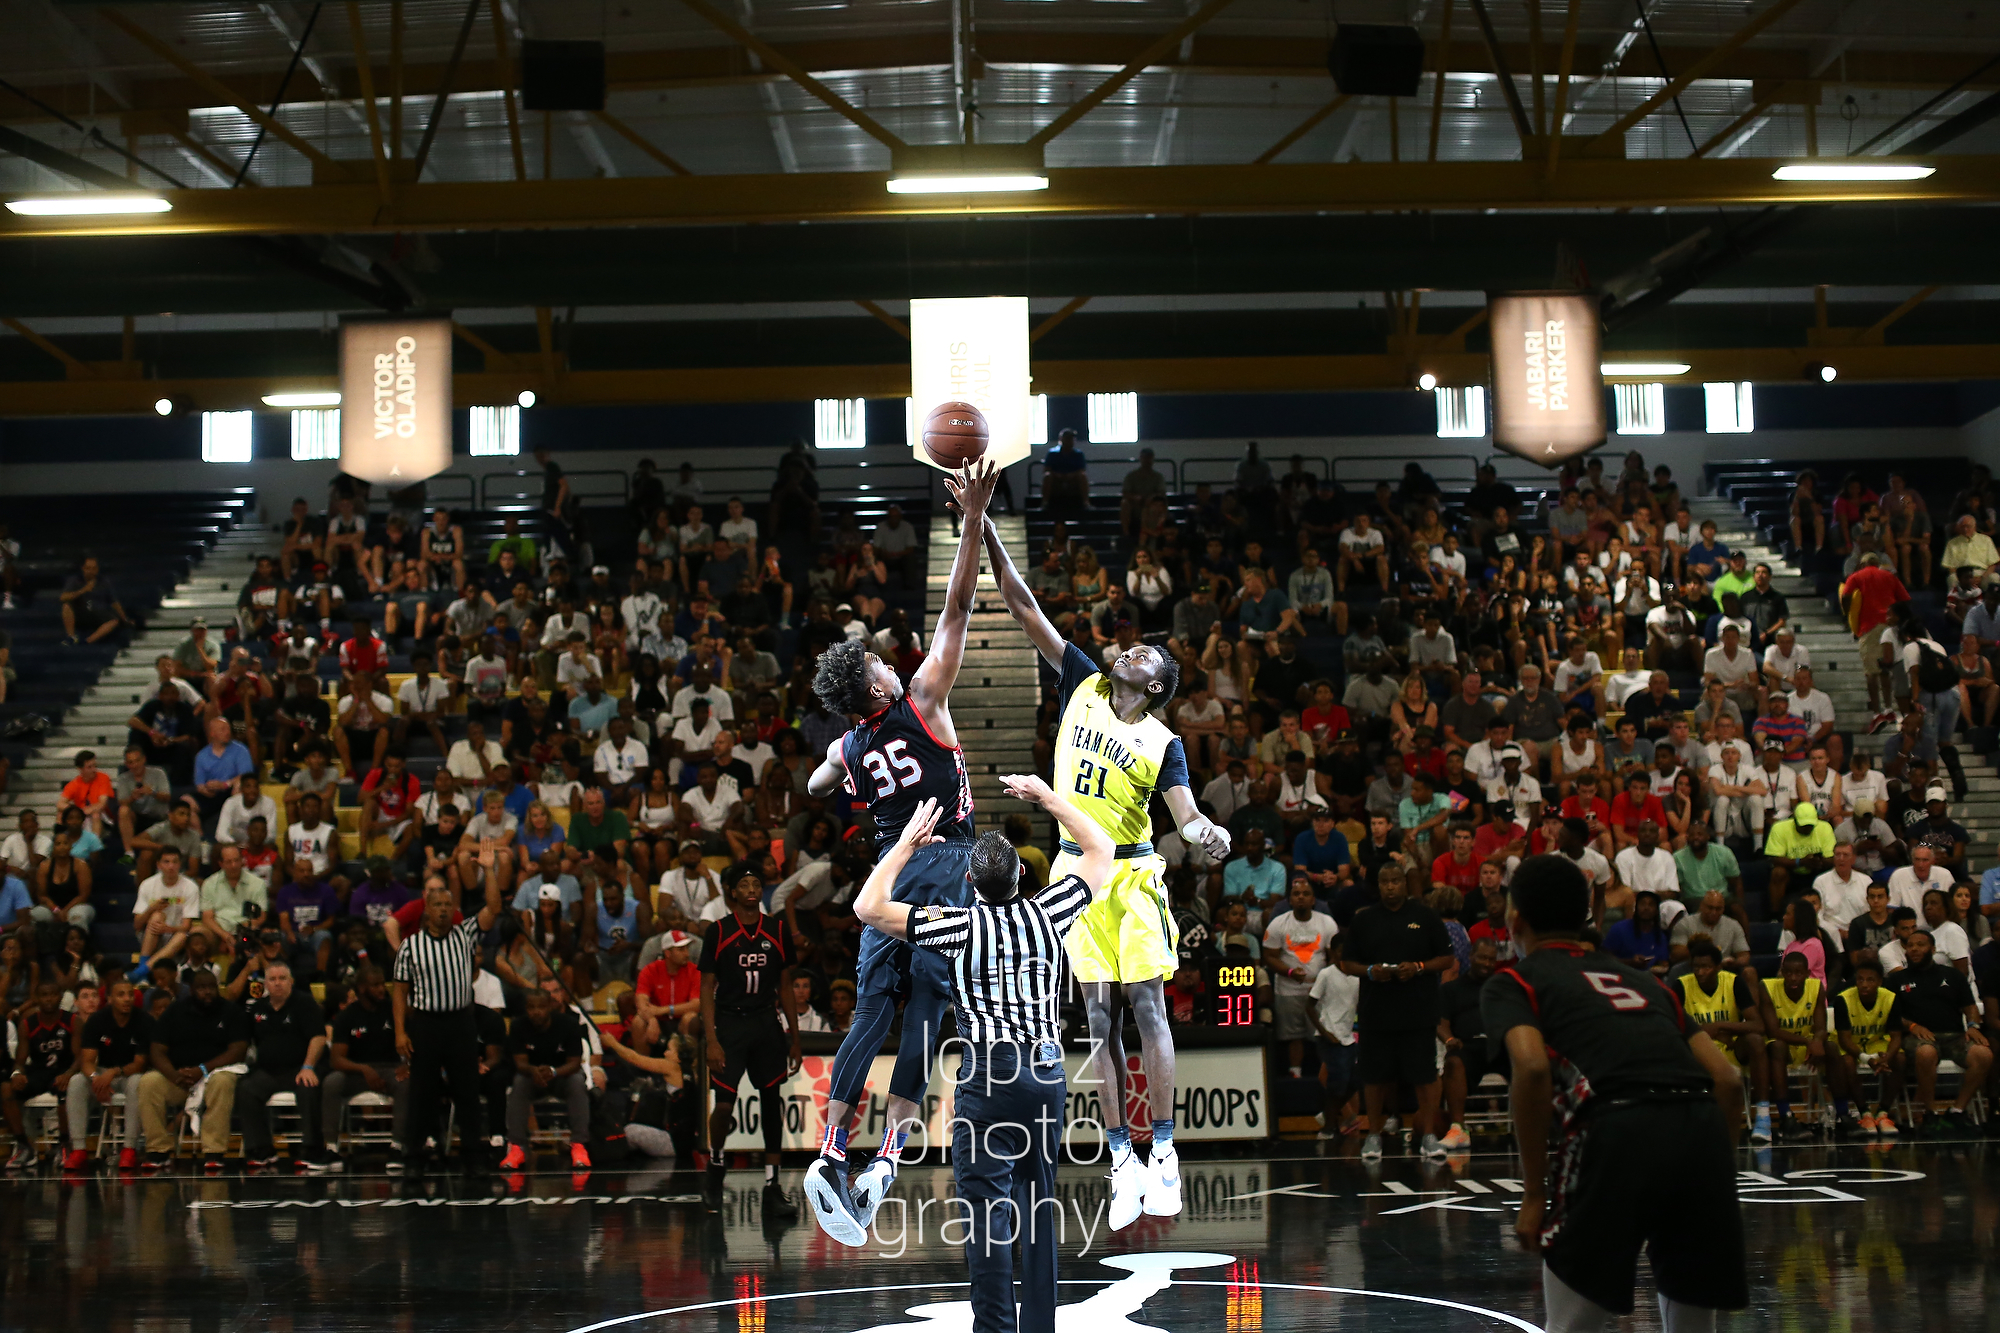 LAS VEGAS, NV. JULY 21, 2016. The Eight. Jump ball between Team CP3 and Team Final. (Mandatory photo credit: Jon Lopez/Nike).